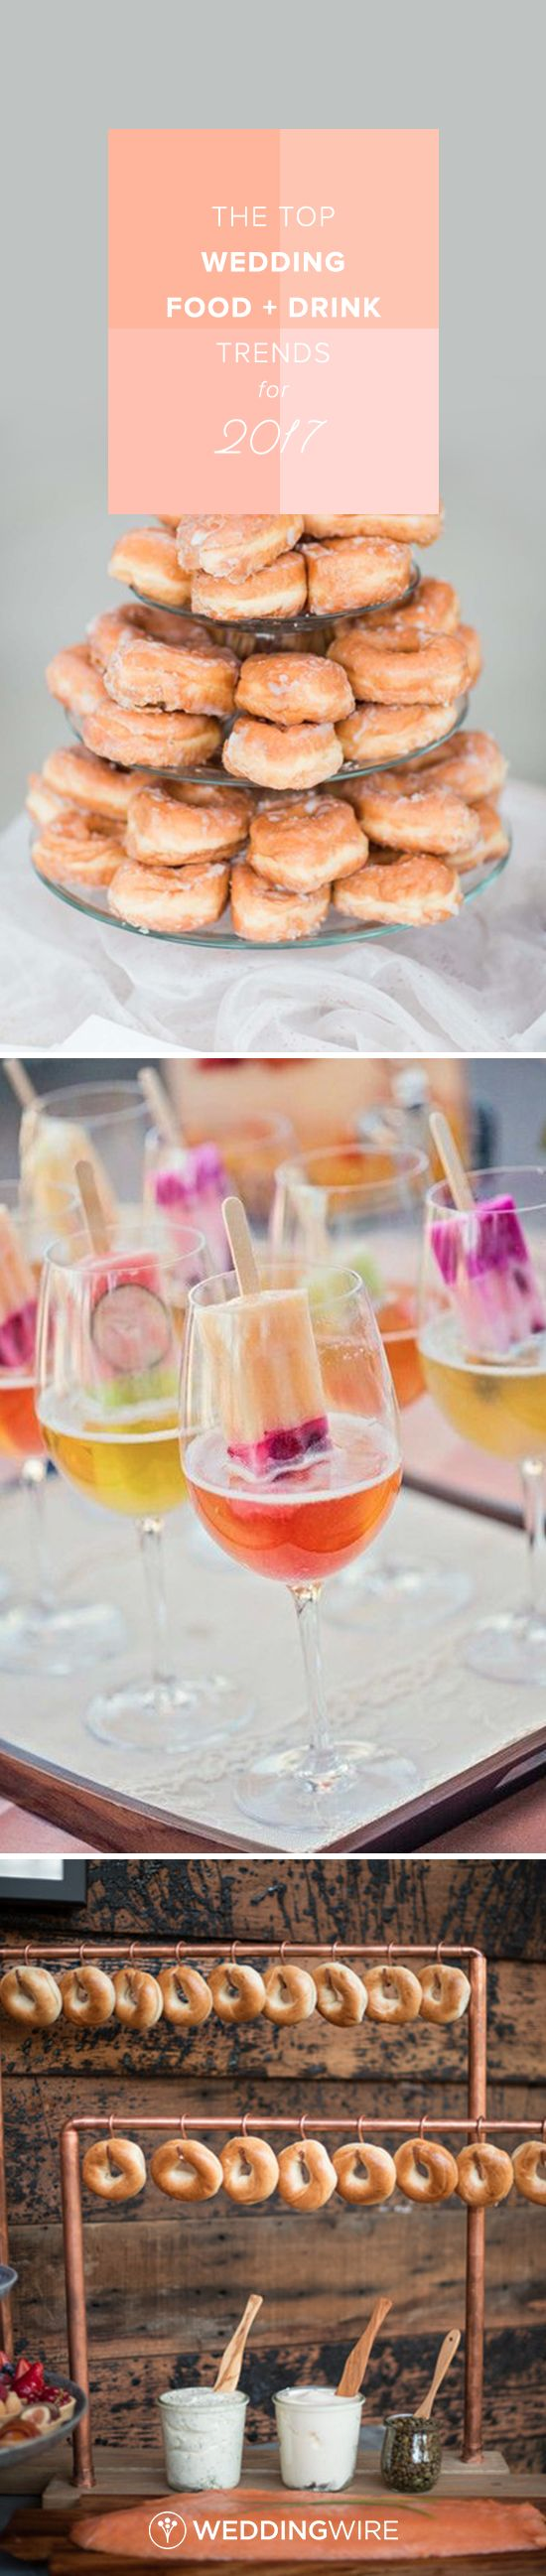 The Top Wedding Food + Drink Trends for 2017 - From poptails to hanging food, see the top food and drink trends for weddings in 2017 on @weddingwire! {Erin Wilson Photography, Debbie Kennedy Events + Design, Carrots Catering and Events}